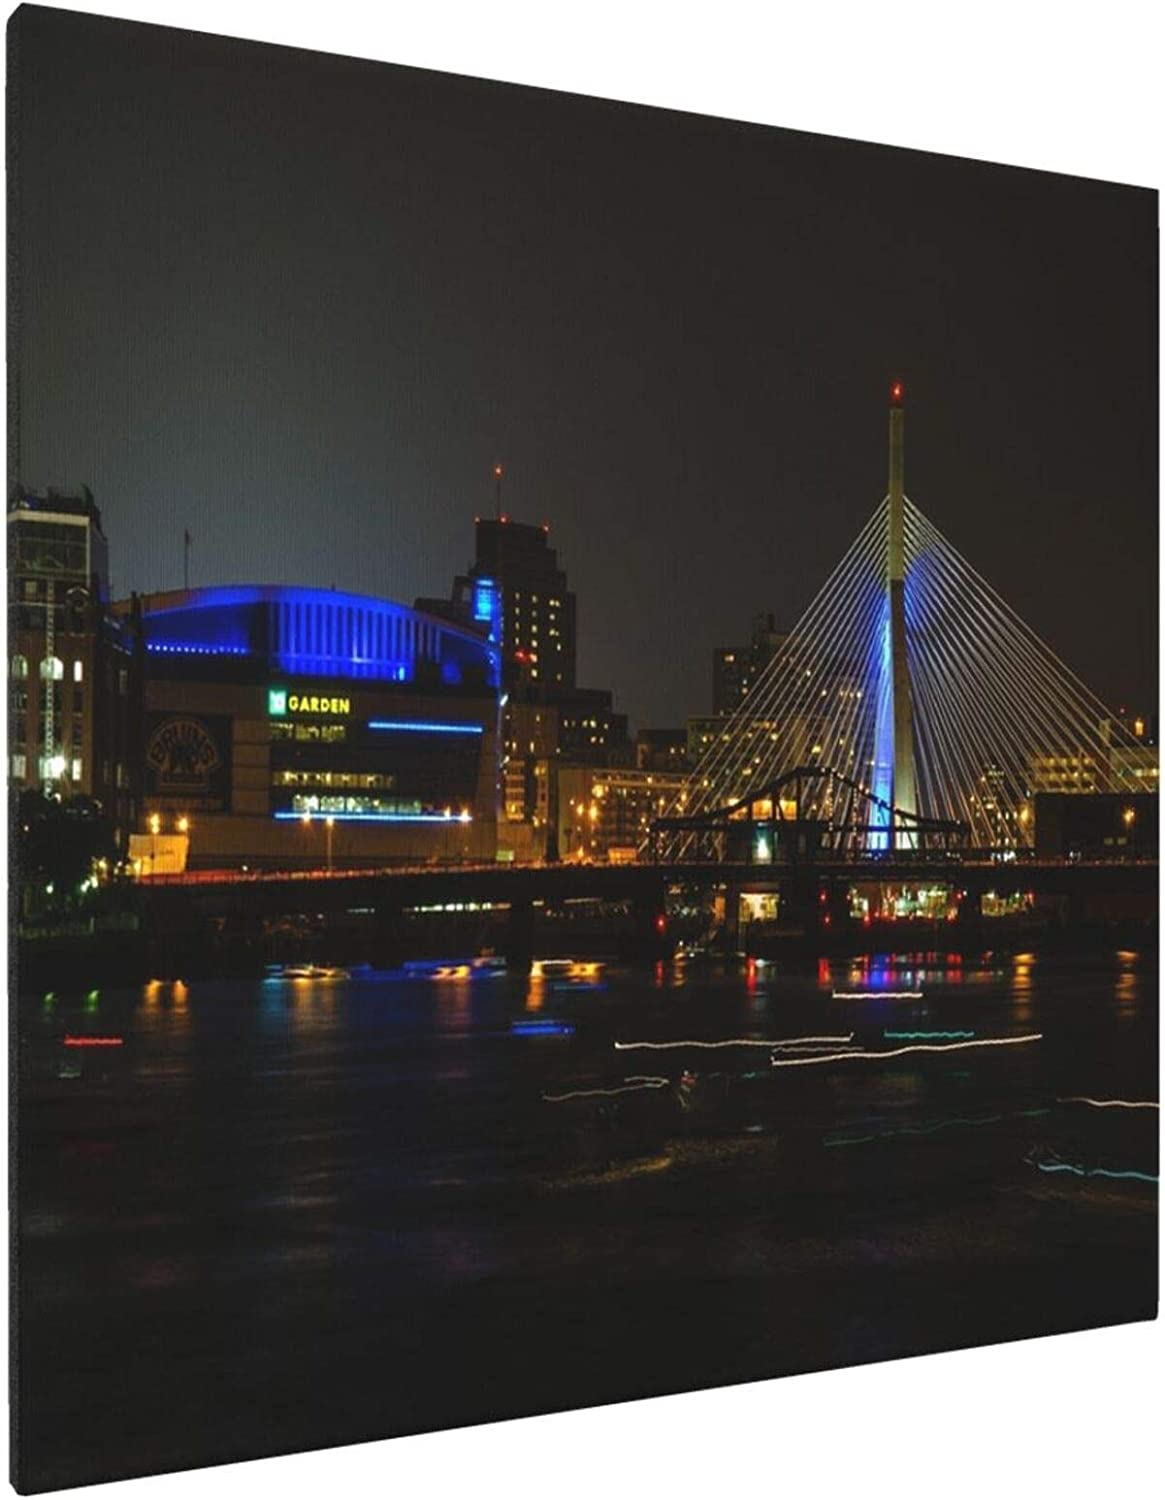 Td Garden at Night Home Bedroom Decor Wall Art Canvas Prints Artwork Painting Pictures 16